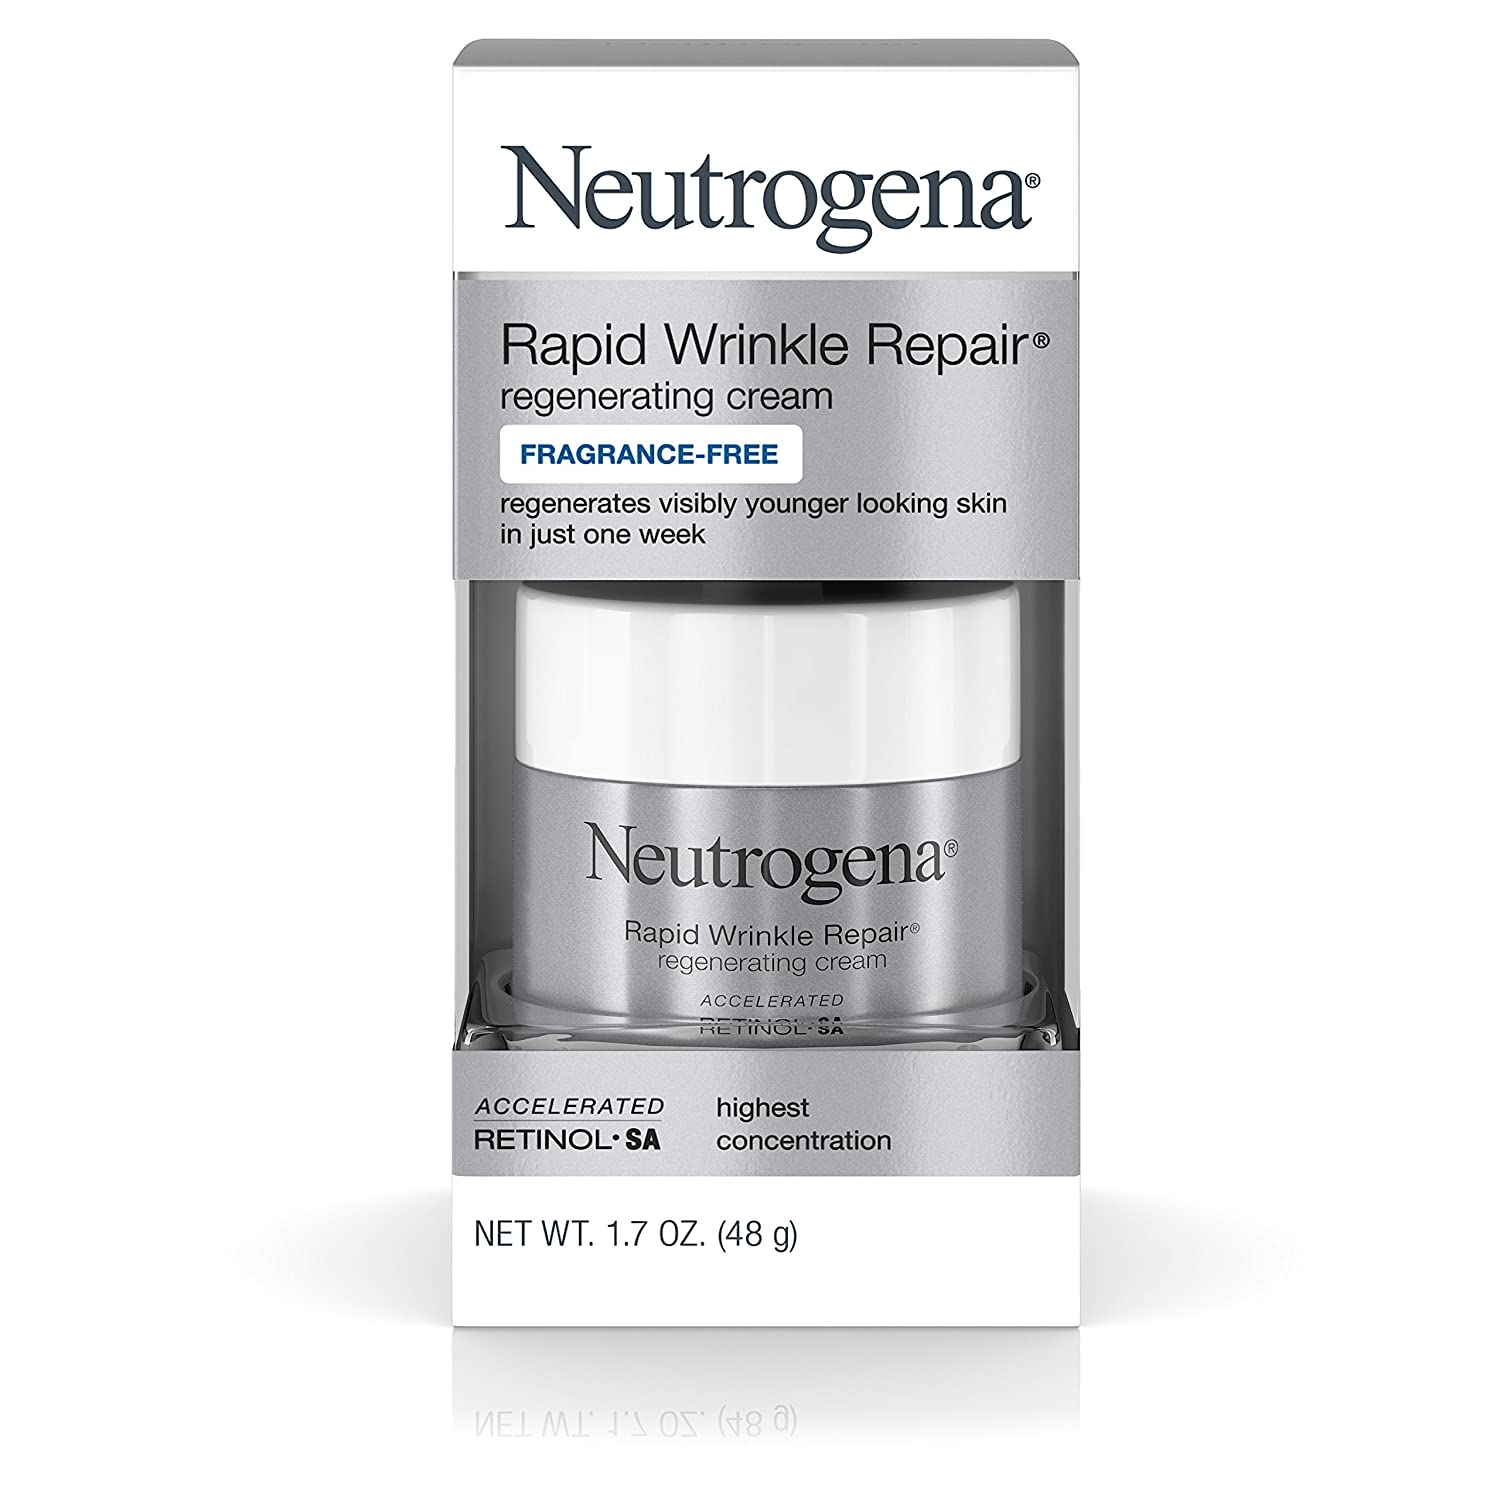 Neutrogena Makeup Removing Wipes, 25 Count, Twin Pack Johnson & Johnson SLC